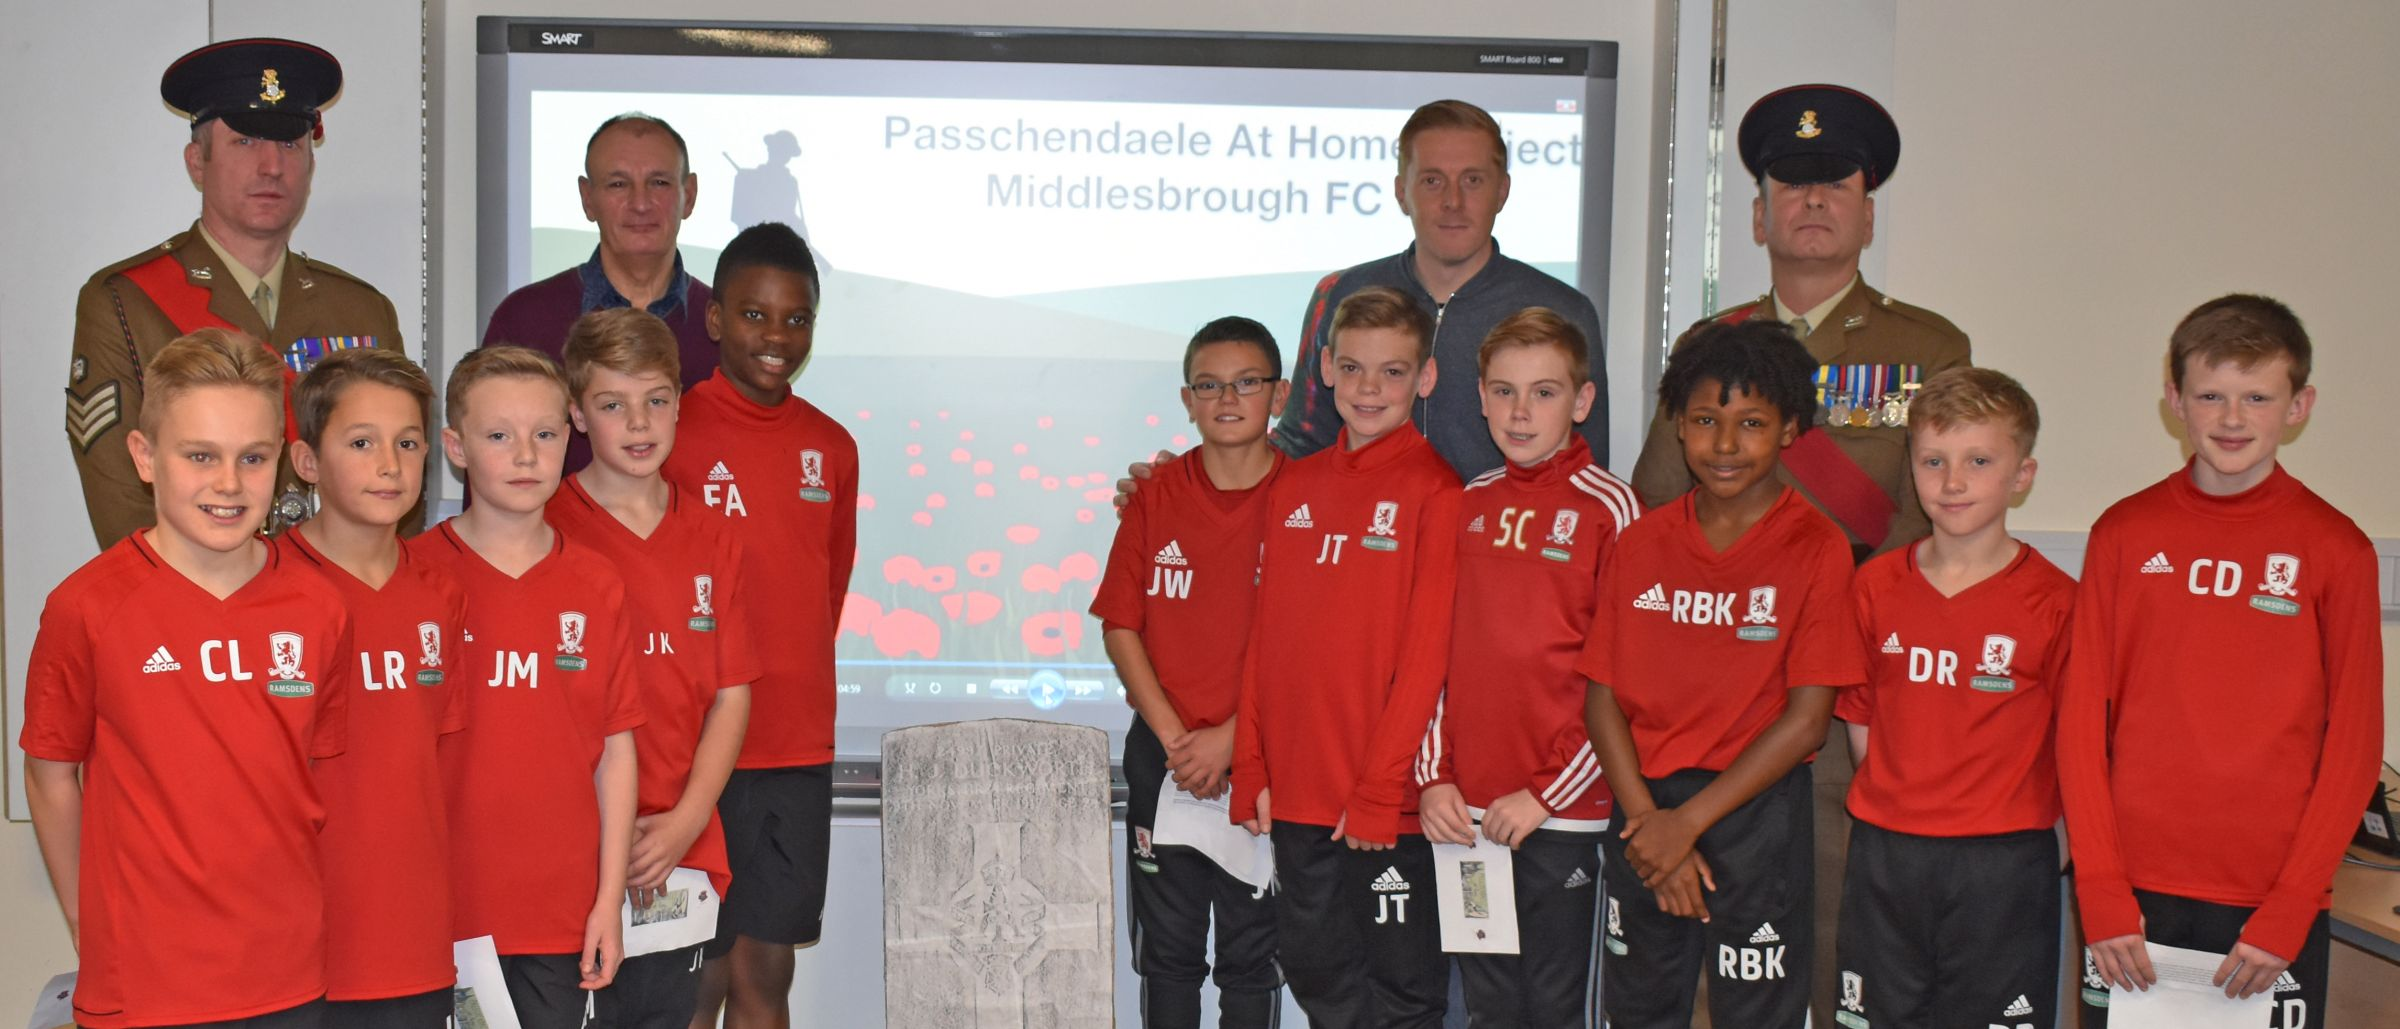 Middlesbrough FC manager Garry Monk with members of the Academy's U12s, two members of the Yorkshire Regiment and Eric Taylor, great newphew of Private James Duckworth who died as a result of injuries suffered at Passchendaele and is buried in Eston Cemetery